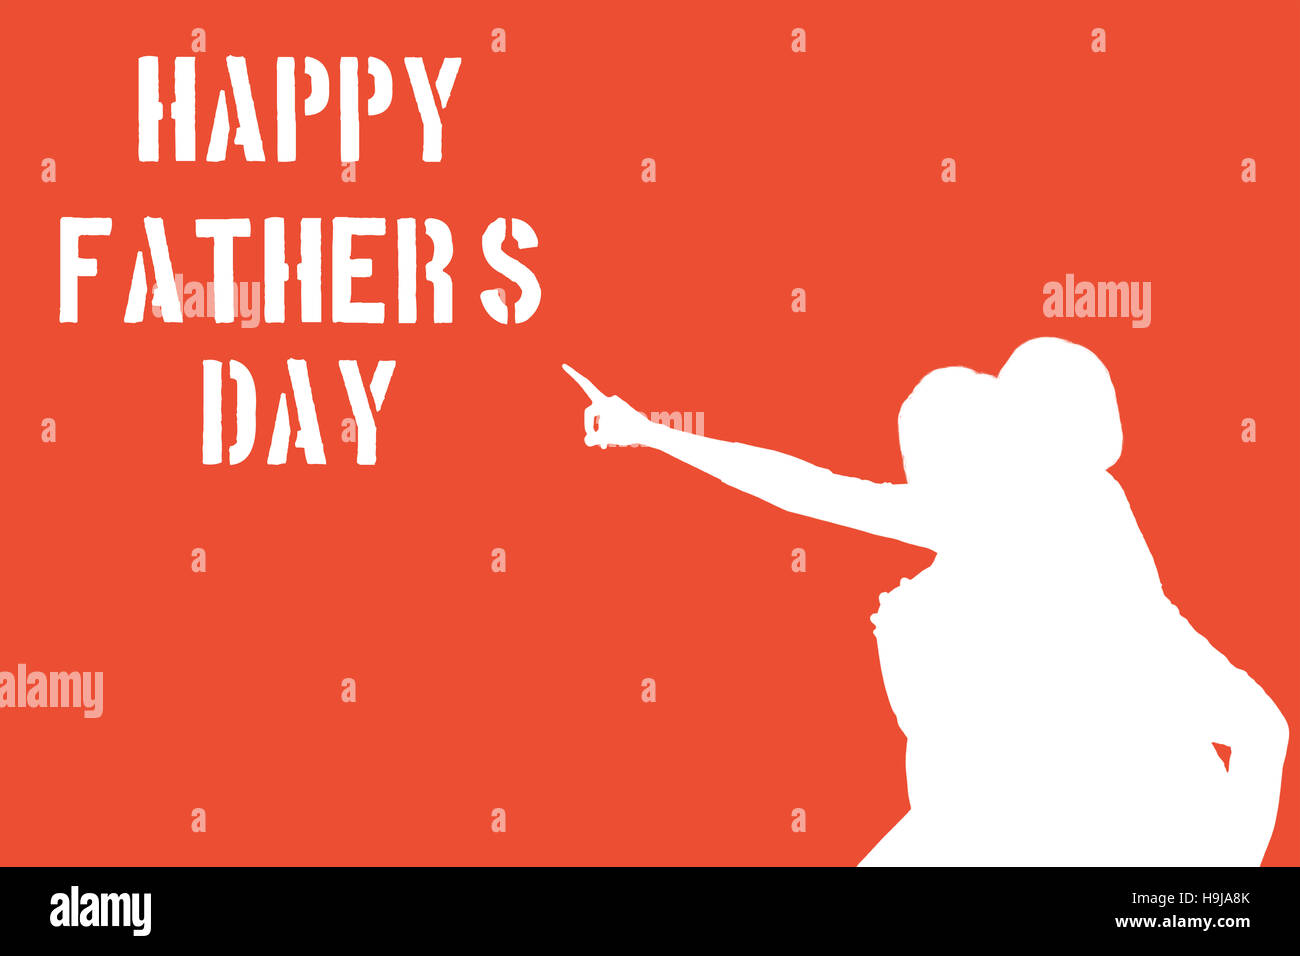 silhouettes pointing at happy fathers day message